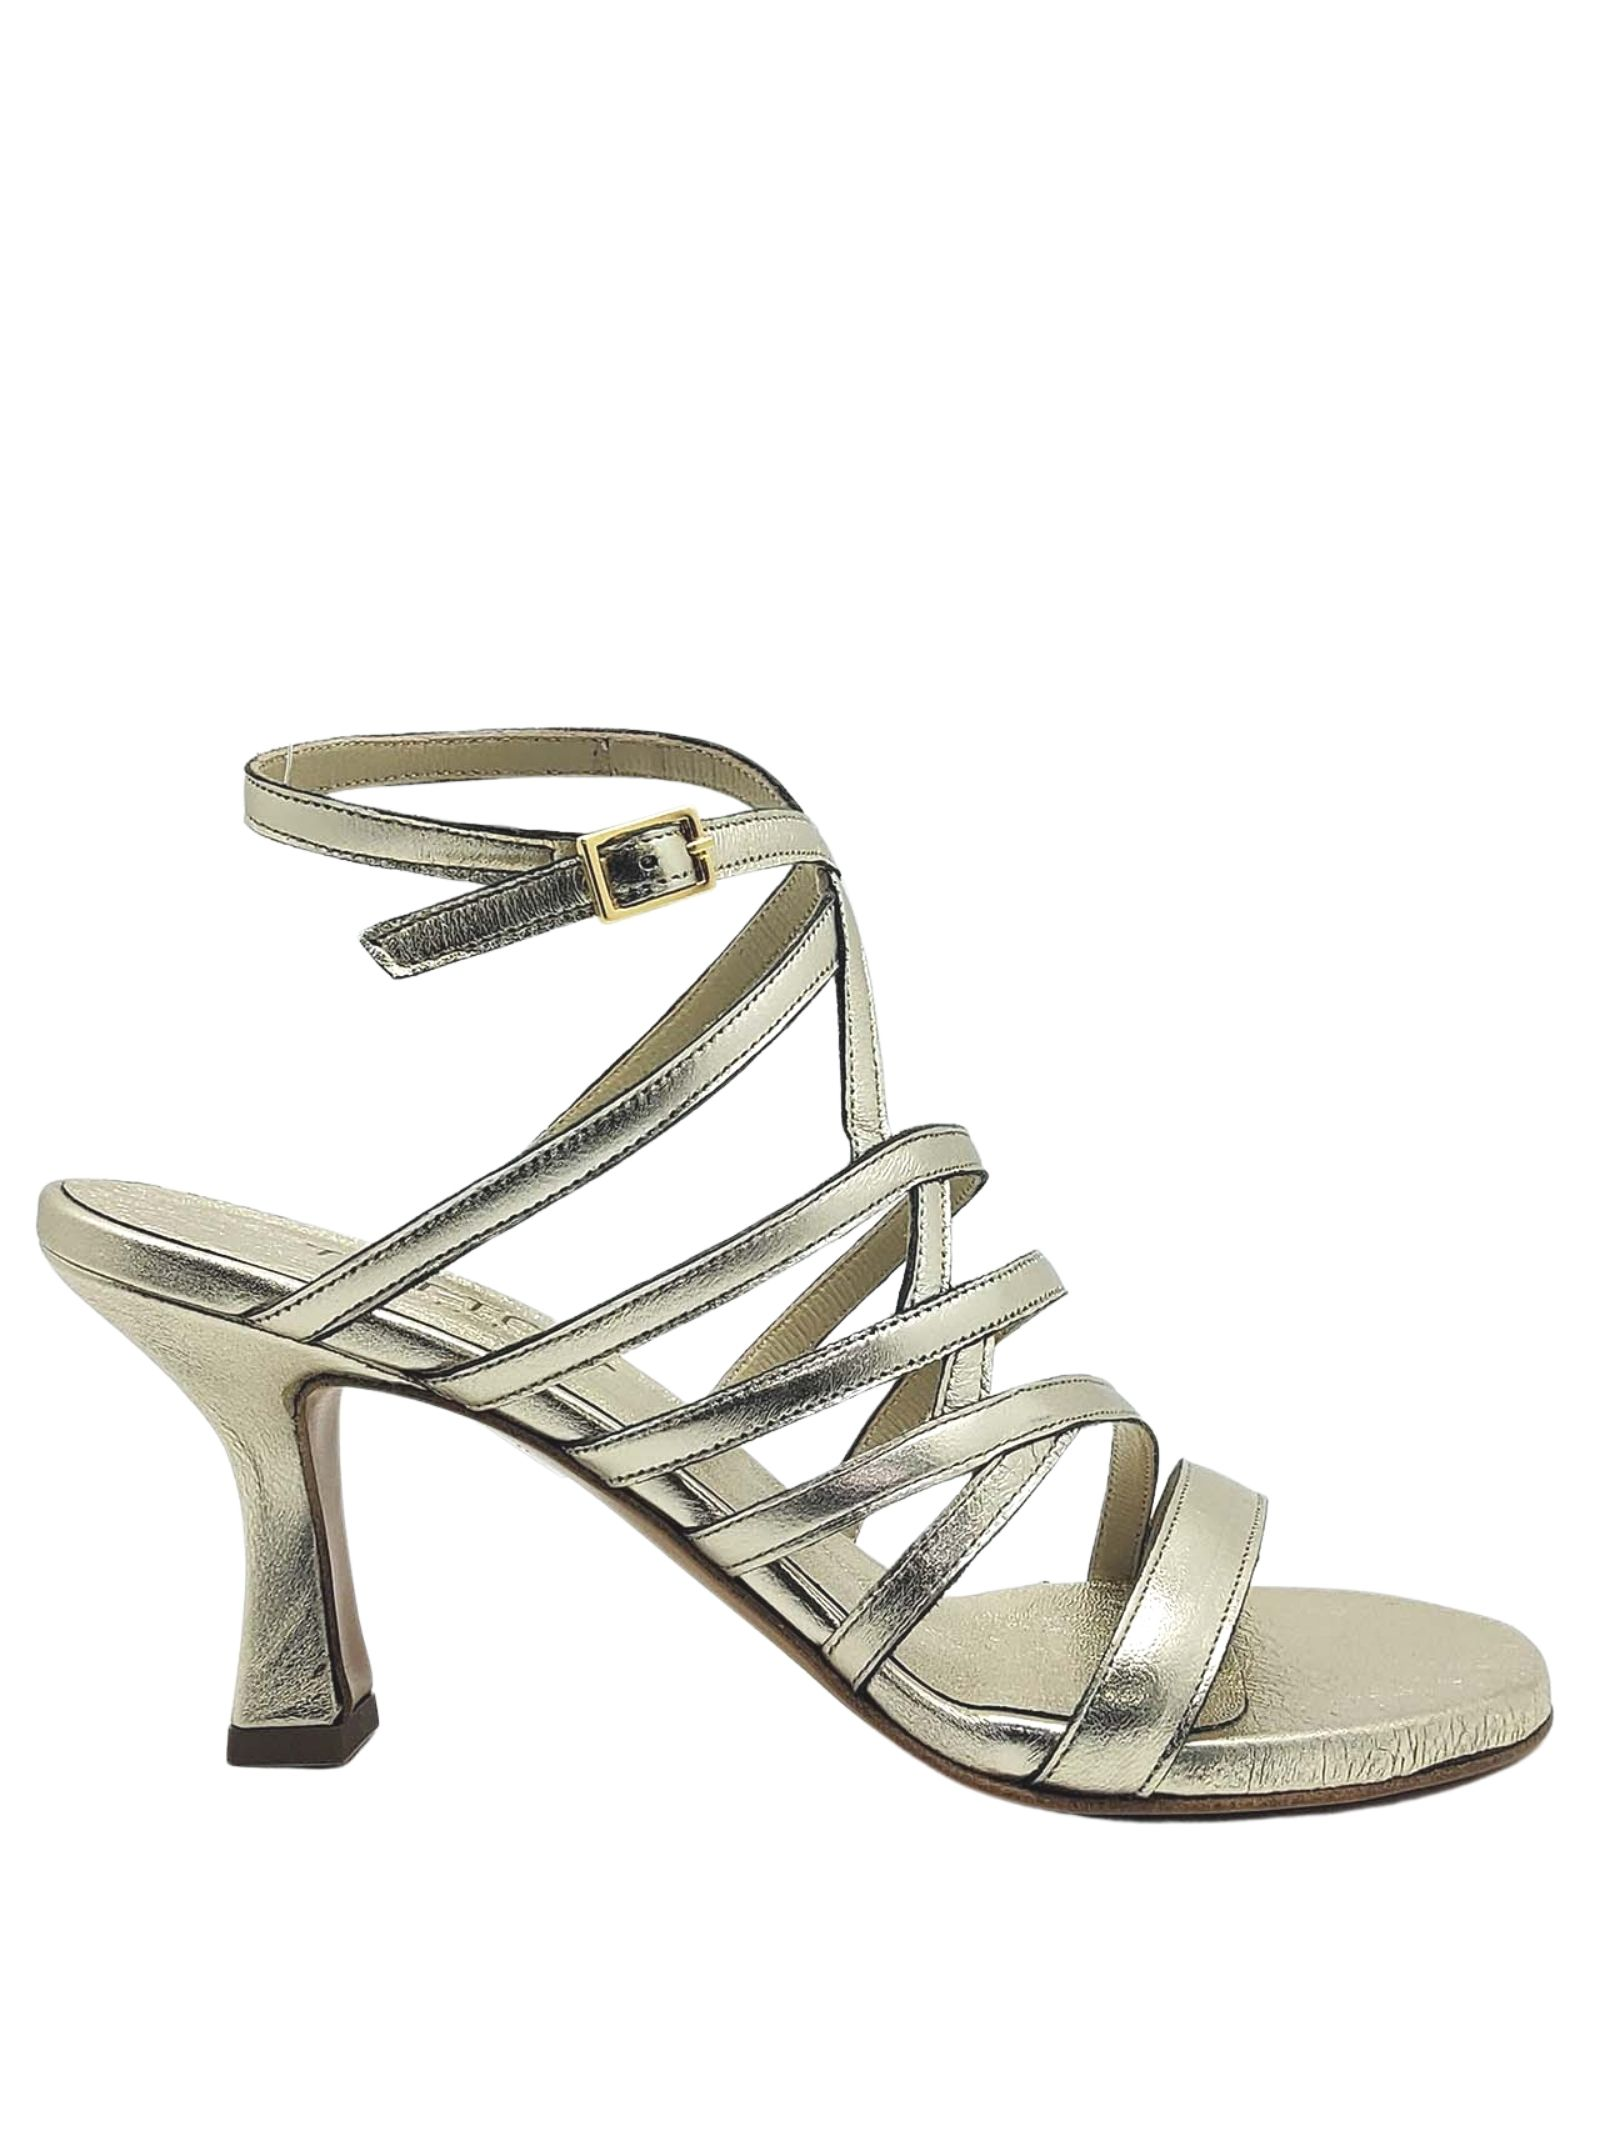 Women's Shoes Gold Leather Sandals With Straps and Side Buckle Closure Tattoo   Sandals   7026602